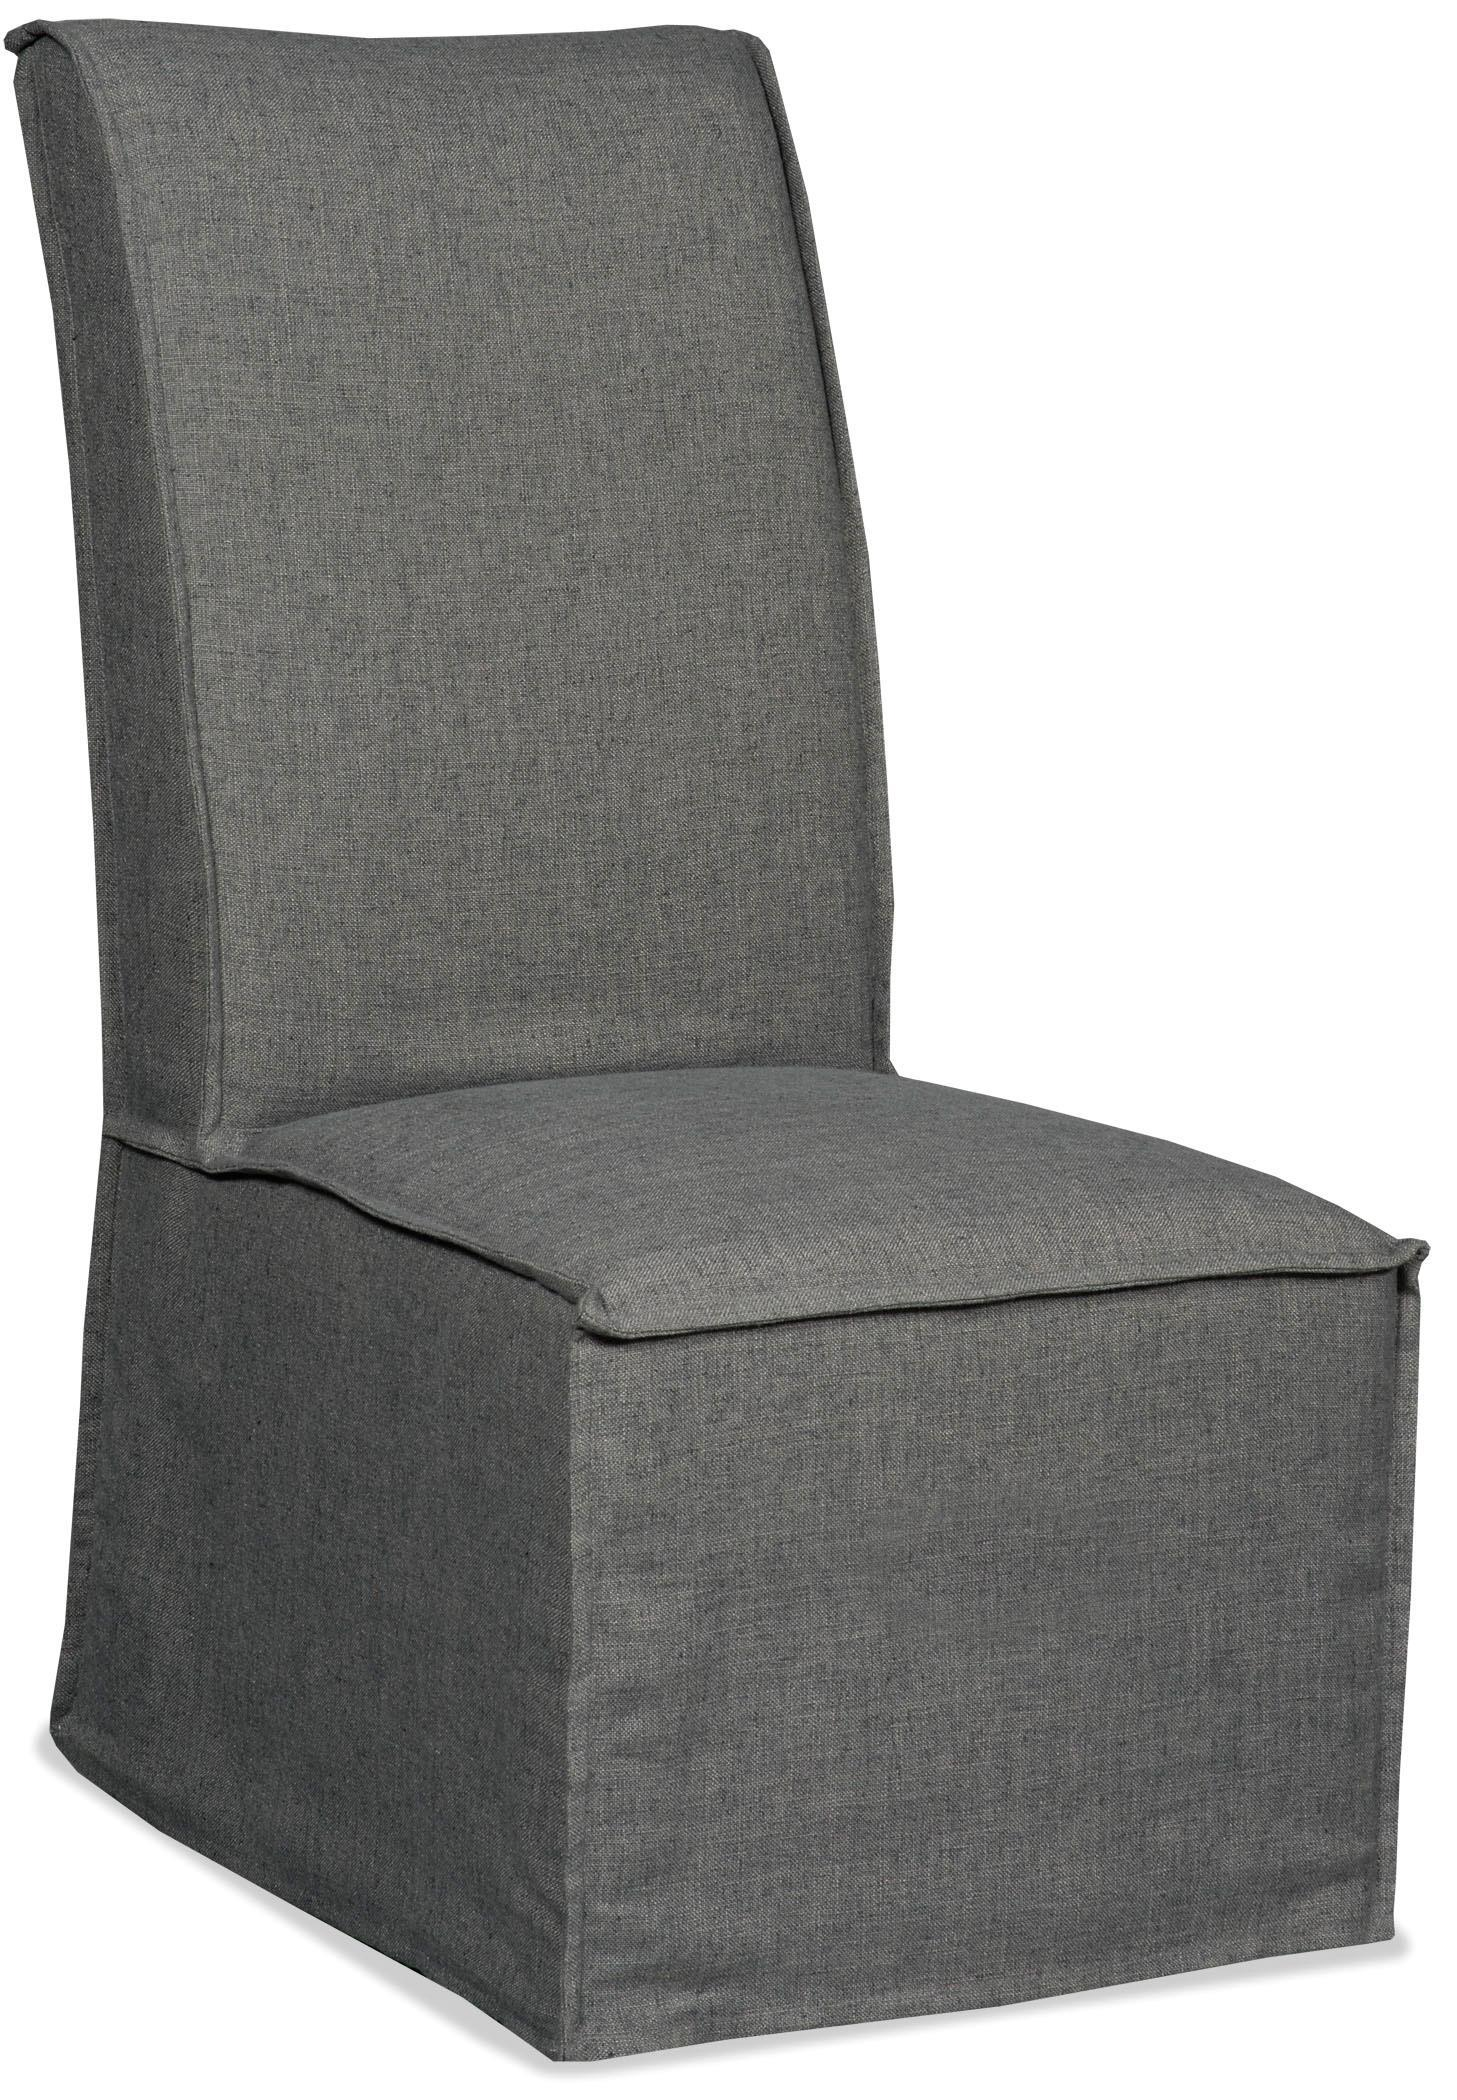 Hooker Furniture Decorator Chairs   Zuma Charcoal Armless Dining Chair - Item Number: 300-350099